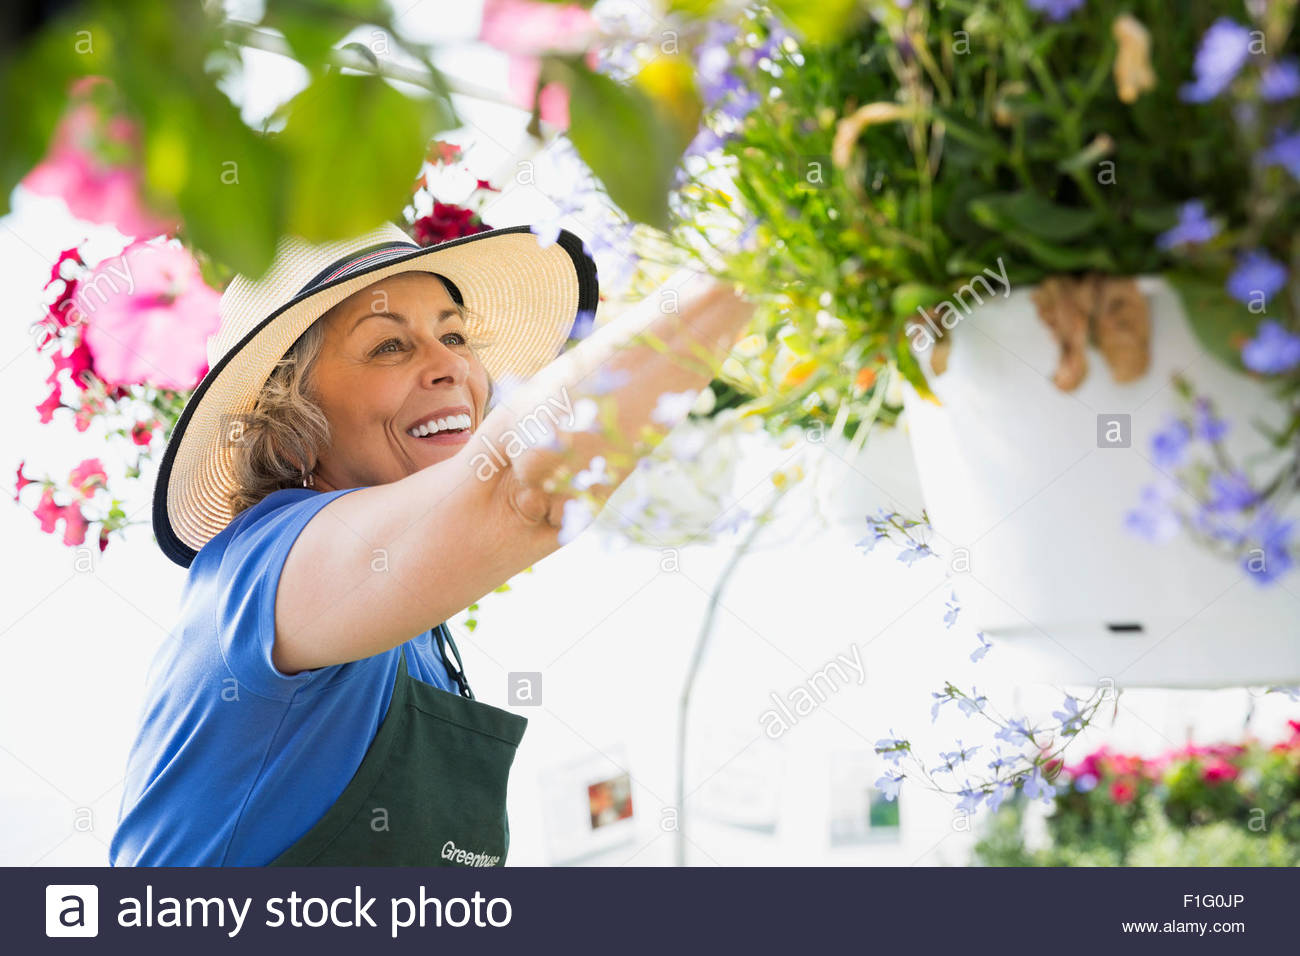 Smiling worker tending to hanging flower baskets - Stock Image